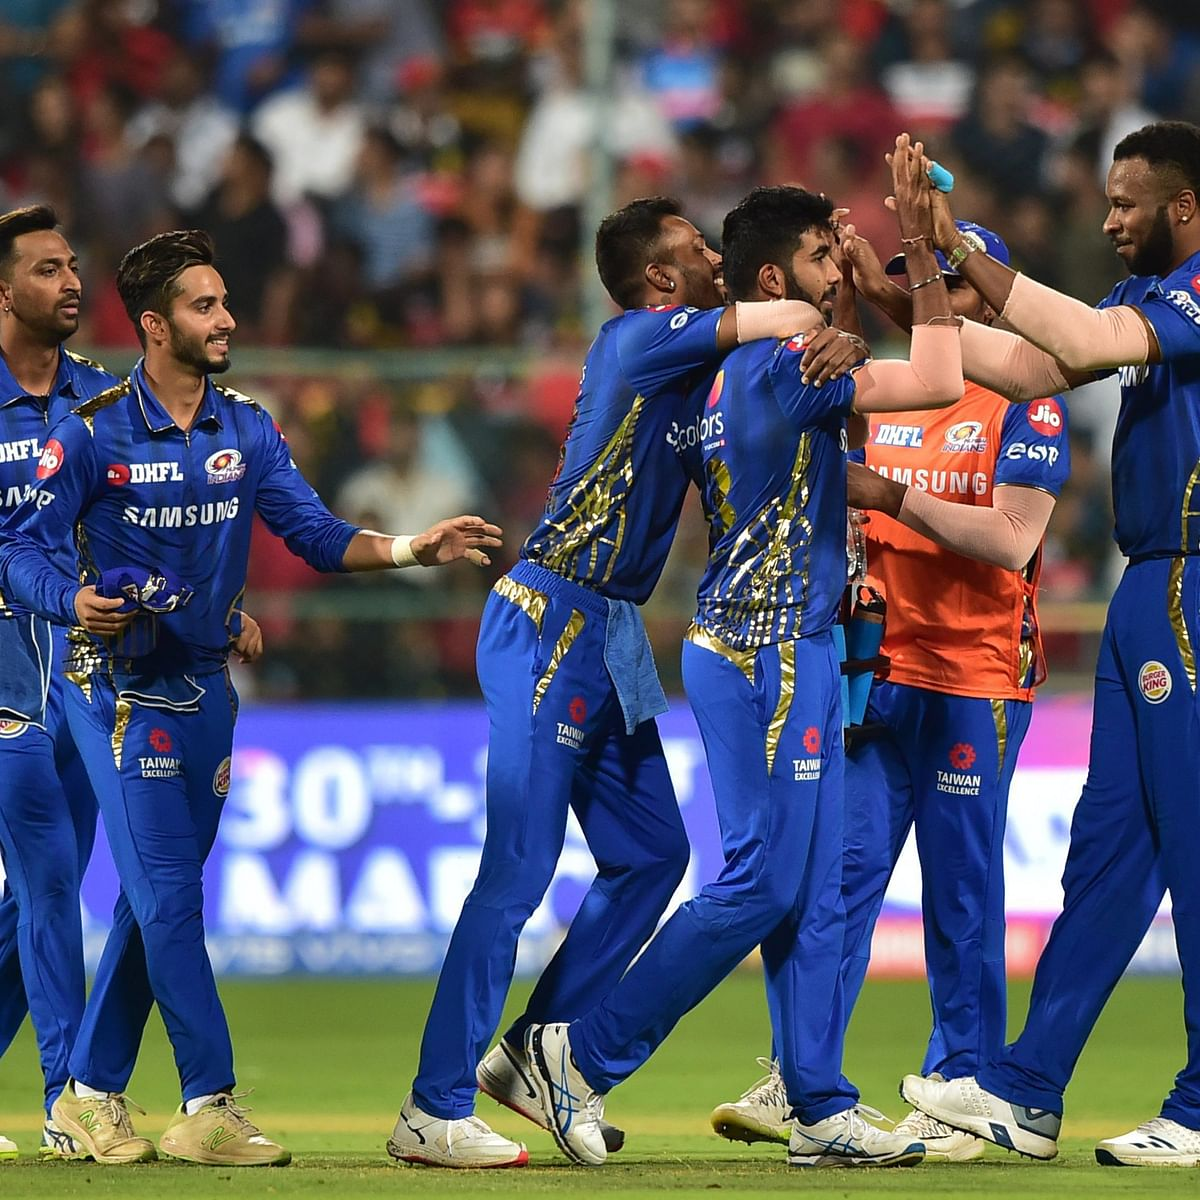 MI vs RCB Dream11 Prediction: Best picks for Mumbai Indians vs Royal Challengers Bangalore IPL match